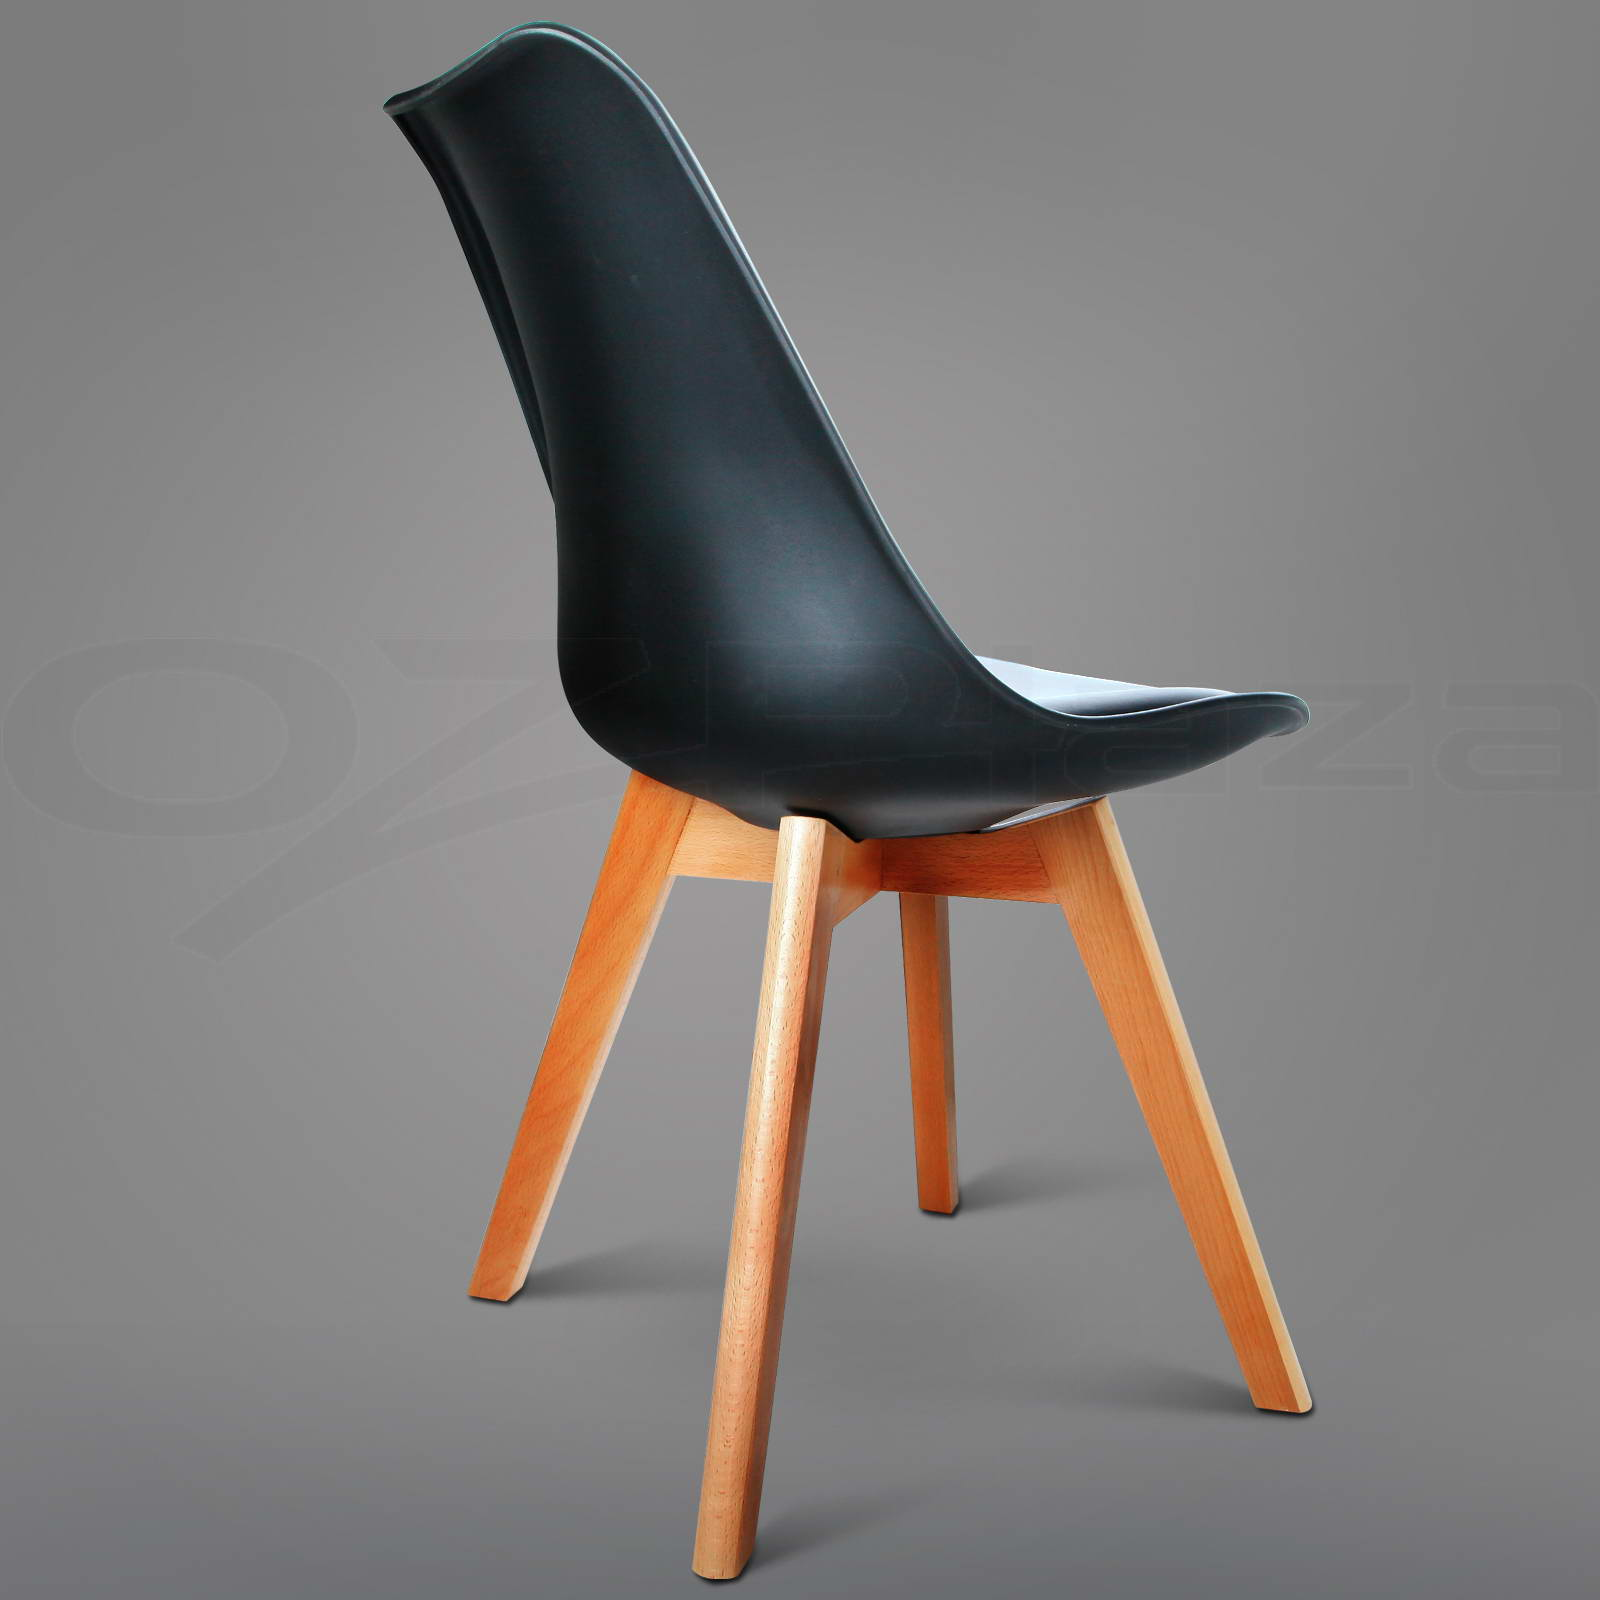 6 x padded retro replica eames eiffel dsw dining chairs cafe kitchen black ebay - Eames eiffel chair reproduction ...